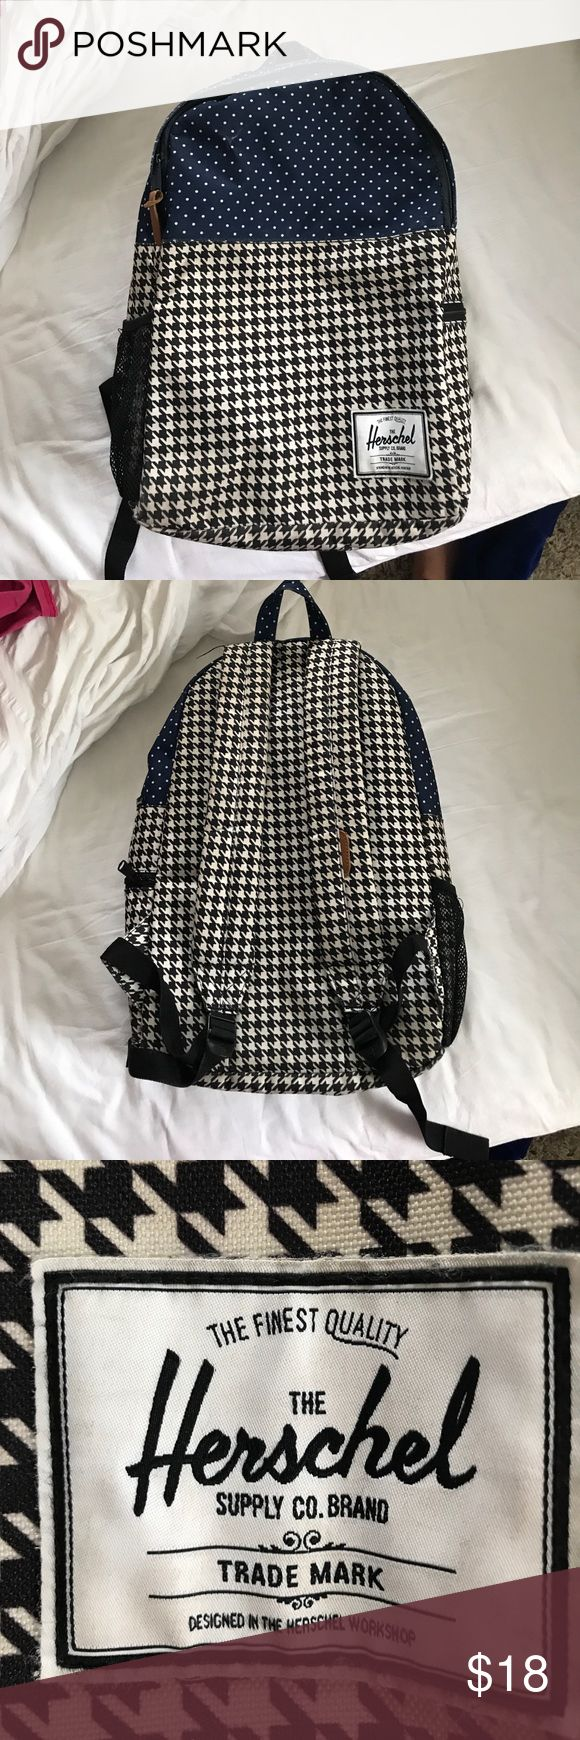 Herschel Backpack! Herschel Backpack. Excellent used condition. No rips in fabric. Minor wear. Zipper works great with leather pull. Inside Backpack has laptop sleeve. Small side zipper and water bottle holder. Herschel Supply Company Bags Backpacks